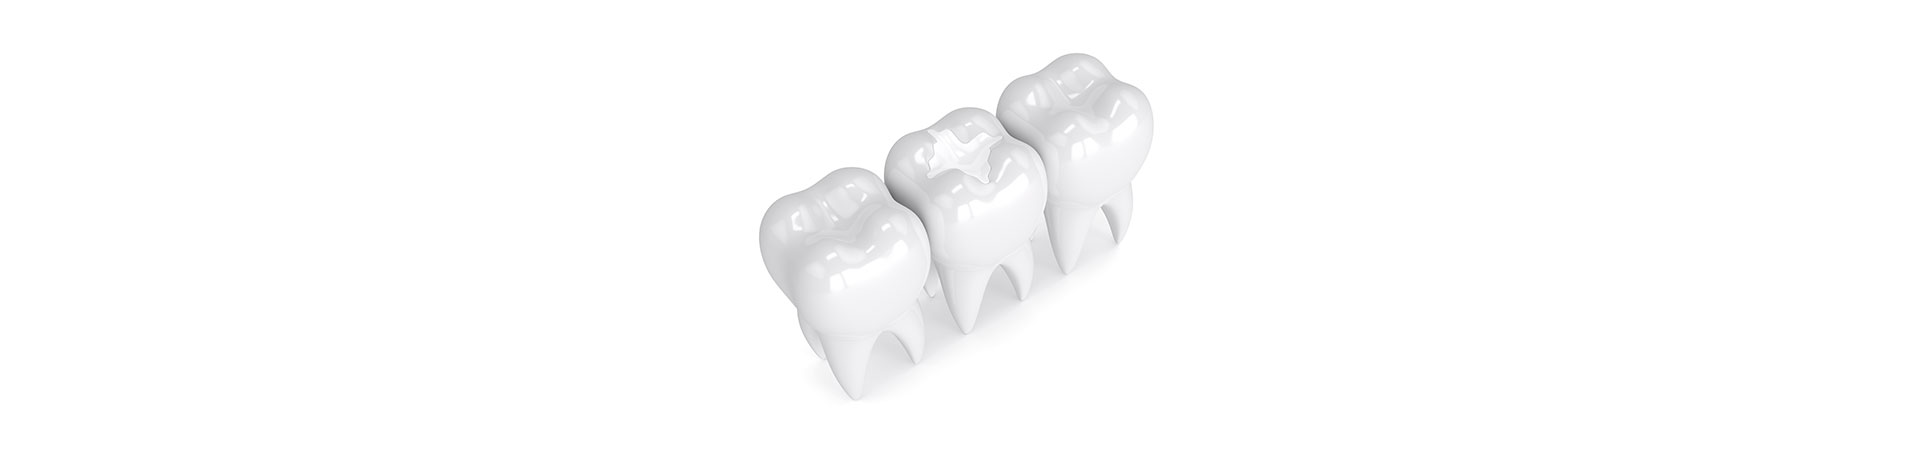 Learn About White Fillings And Silver Fillings